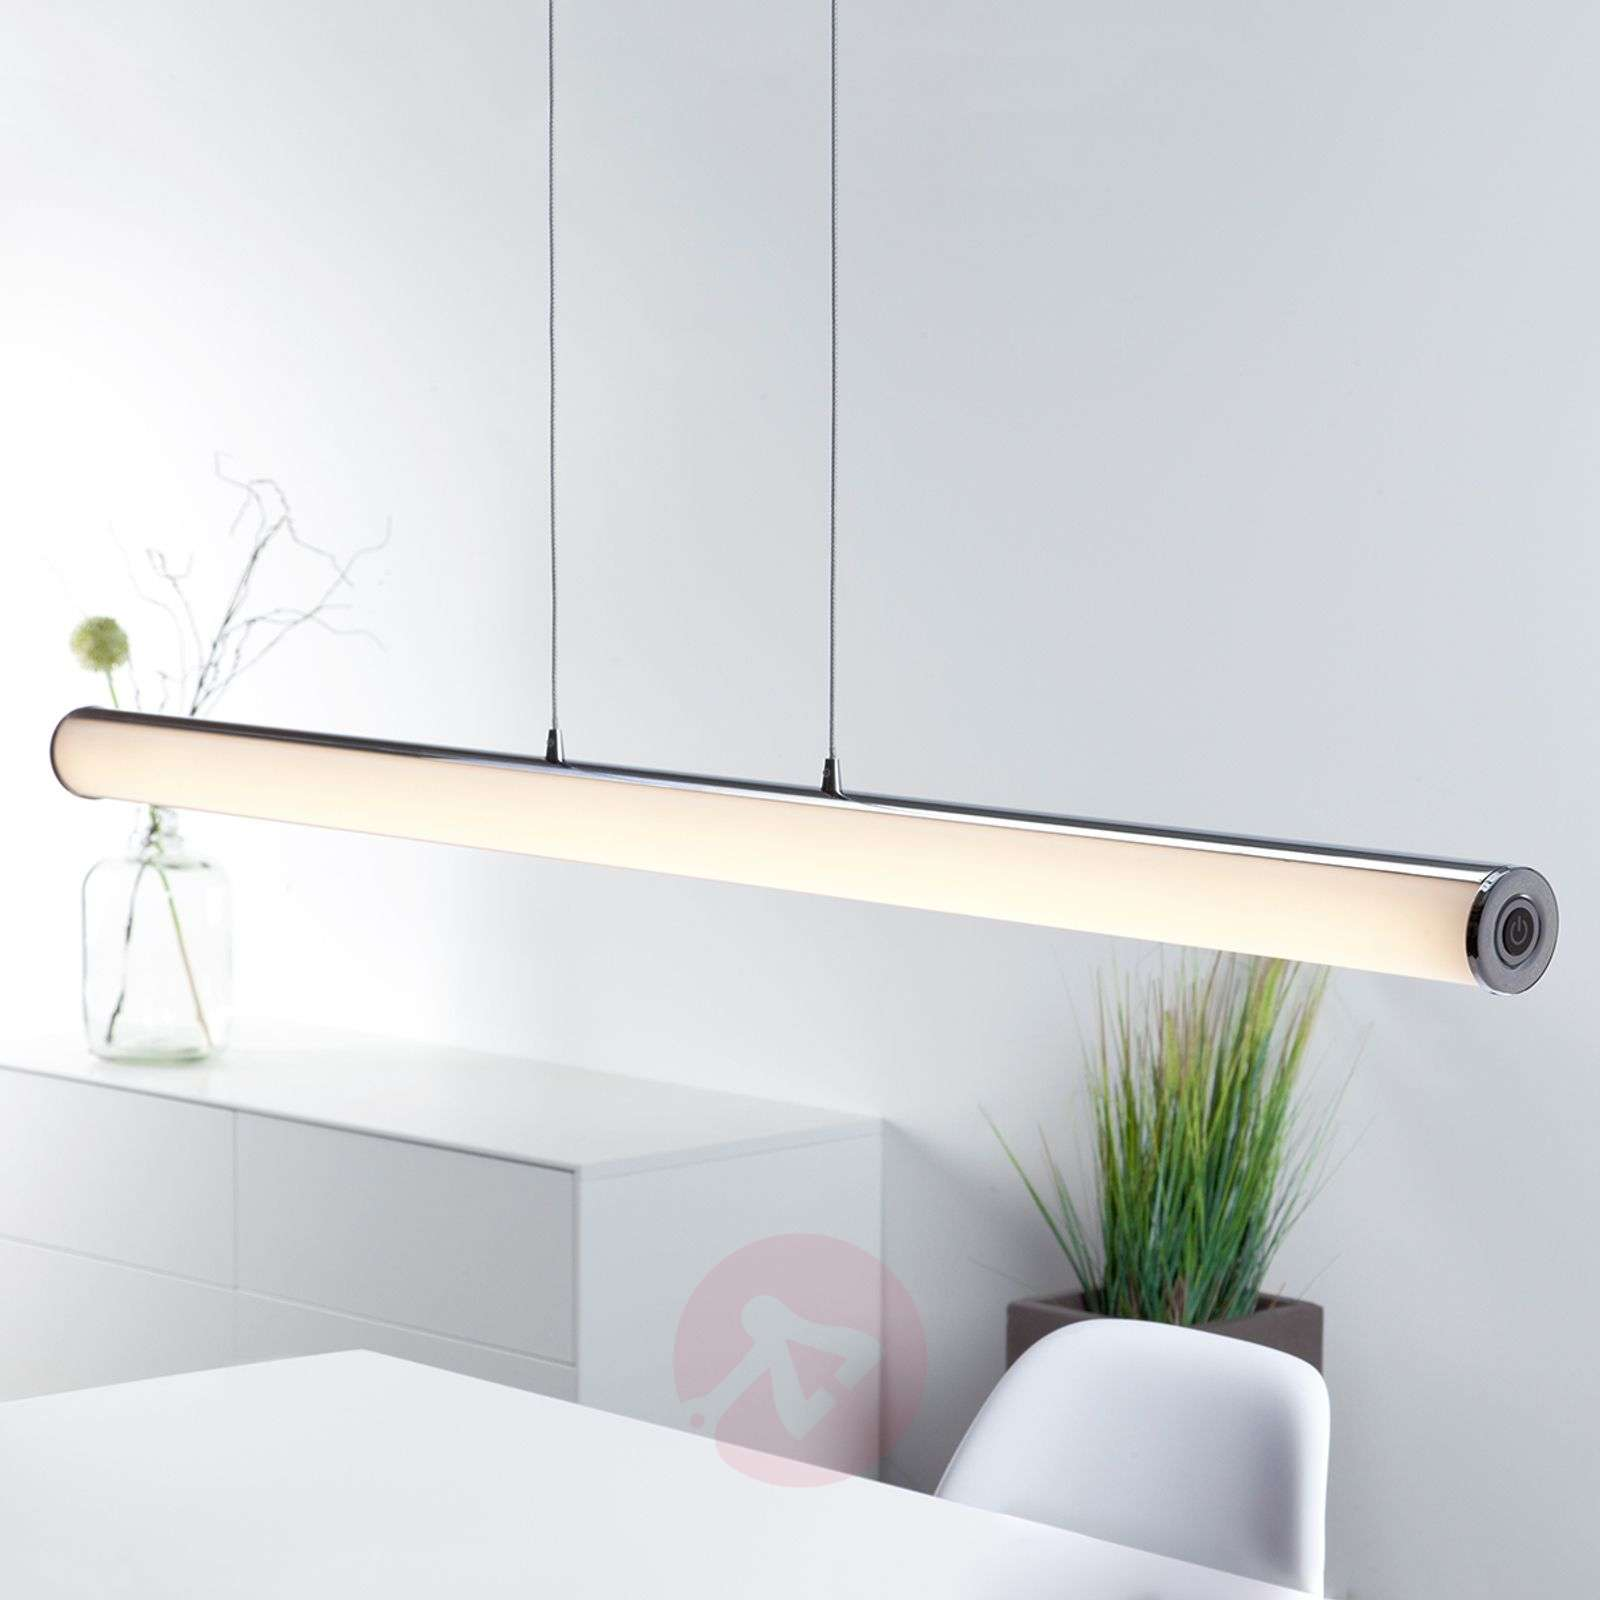 Suspension LED Tube au design minimaliste-1508960-02